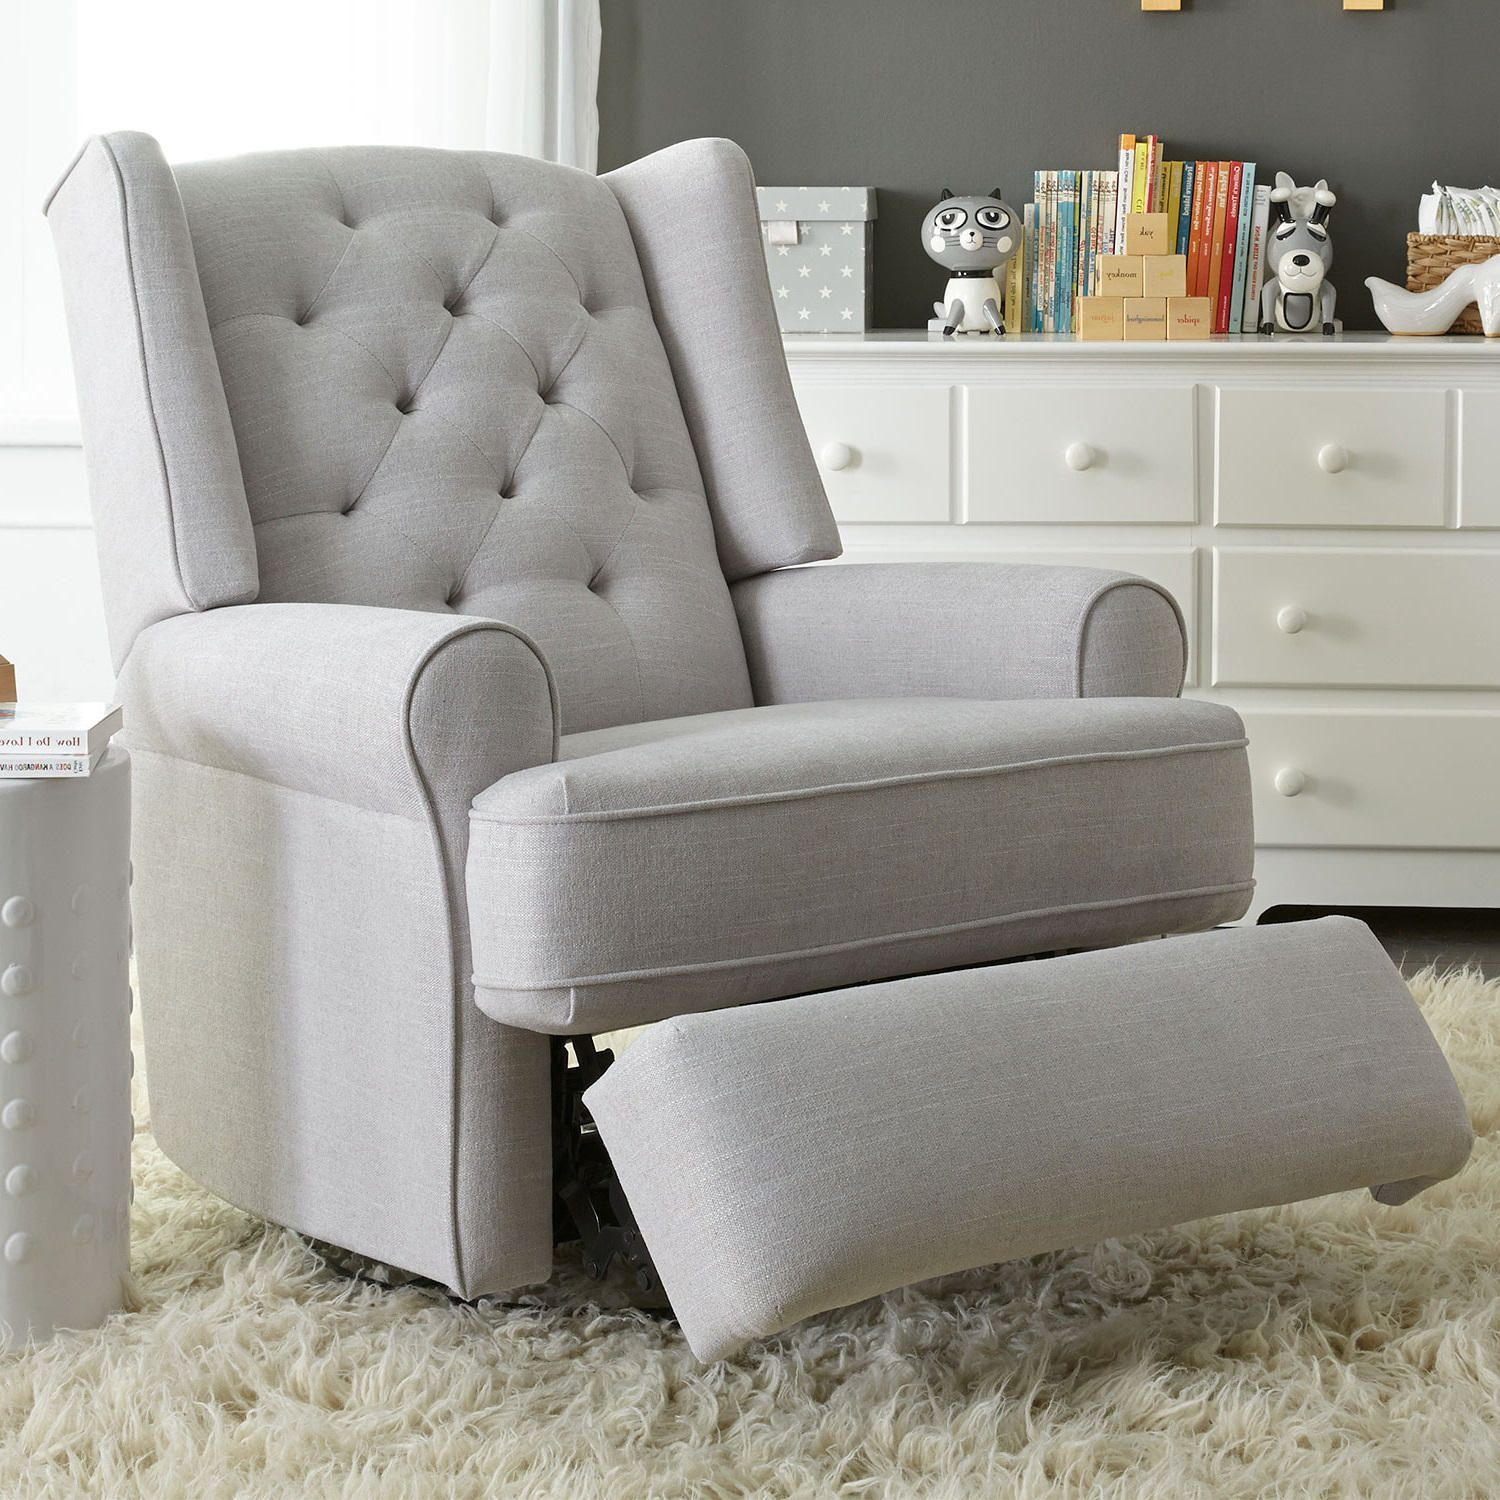 Create A Cozy And Elegant Space With Recliner Chair In 2020 Rocking Chair Nursery Swivel Glider Recliner Nursery Chair Recliner